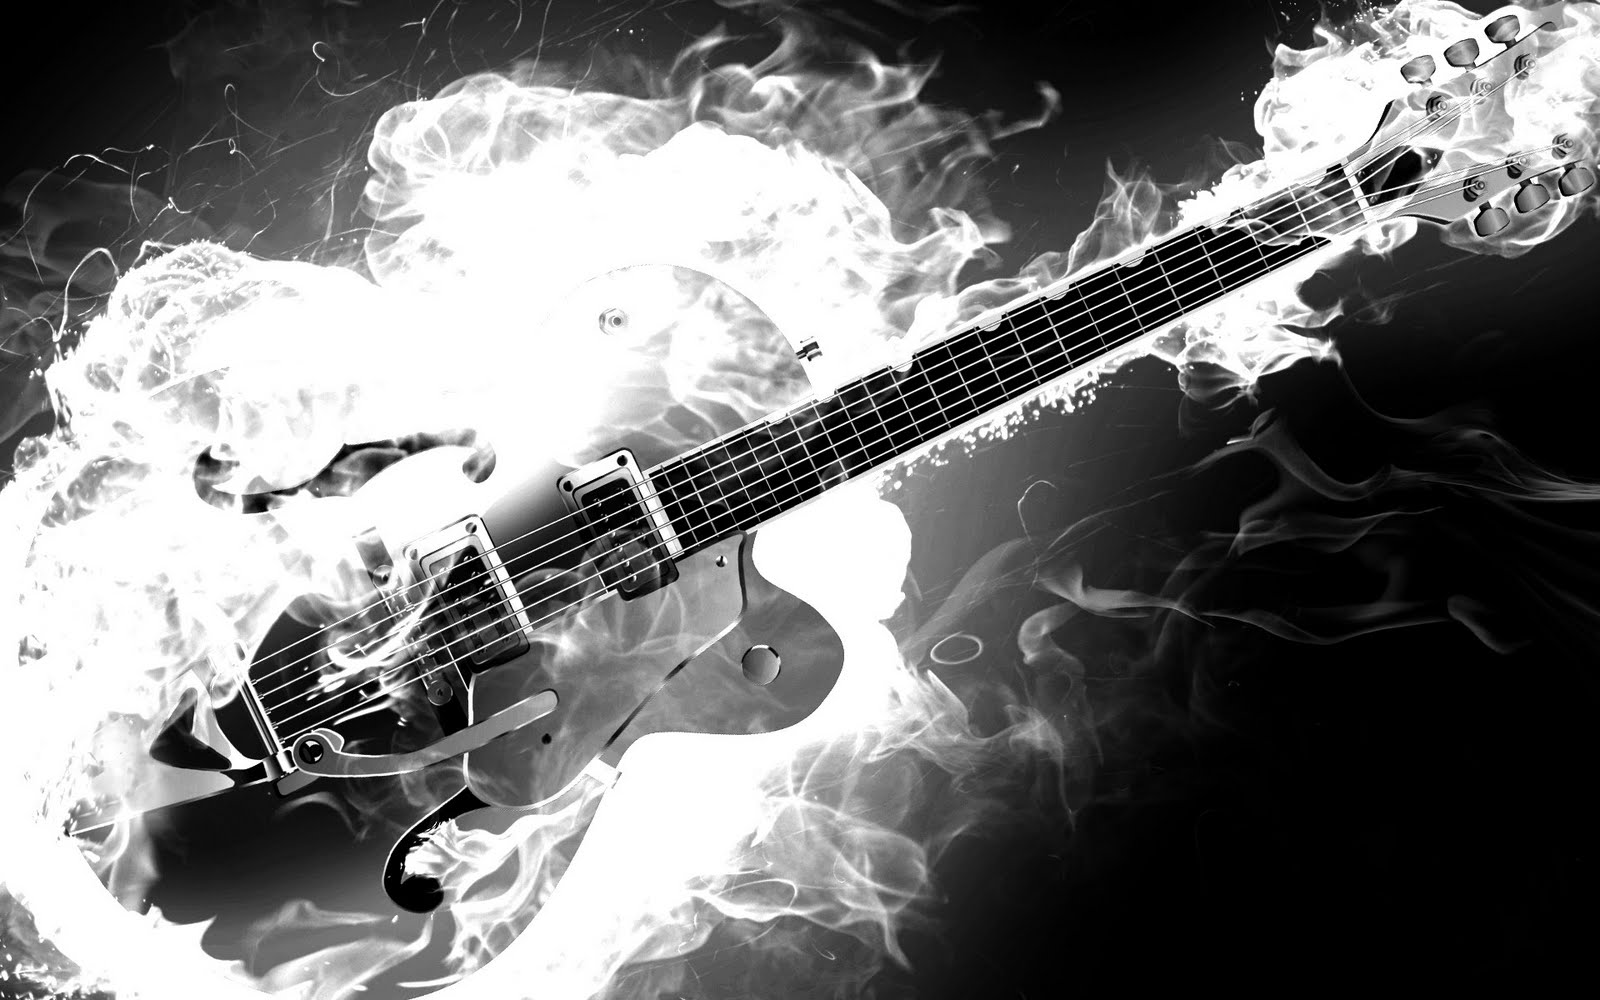 Smoke Flames HD Music Desktop Wallpaper   1920x1200 Great Guitar Sound 1600x1000